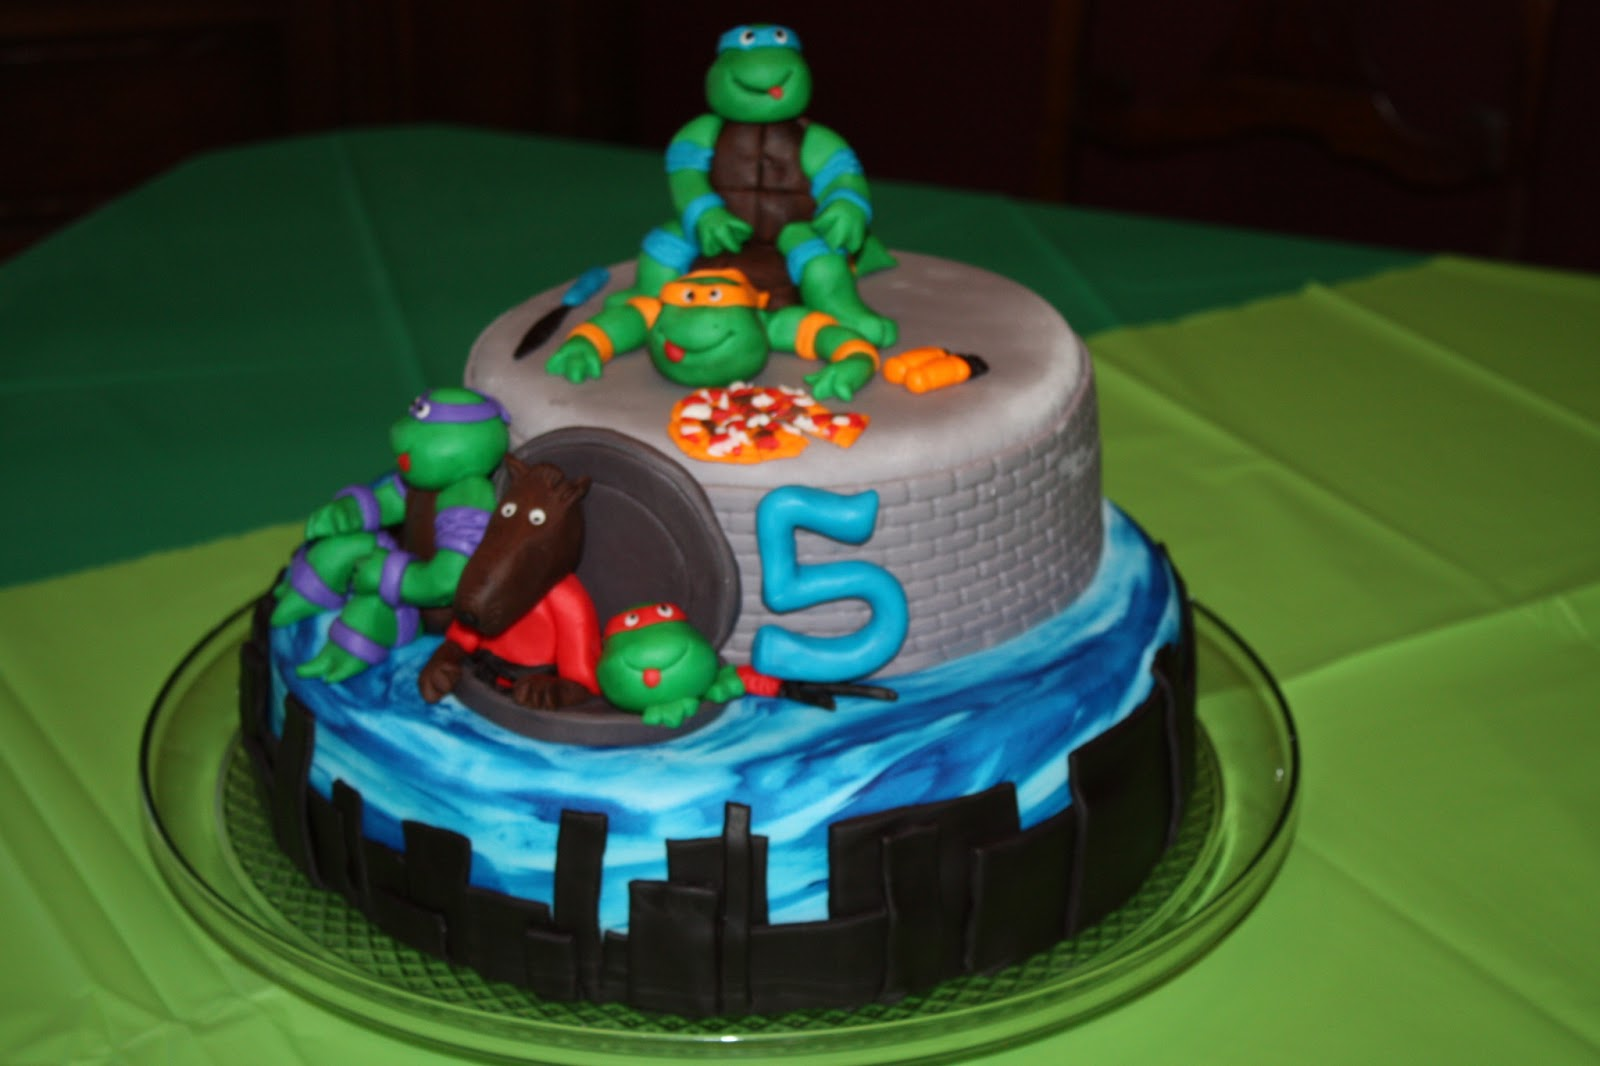 Sweet Melissas Cakery Teenage Mutant Ninja Turtles Birthday Cake